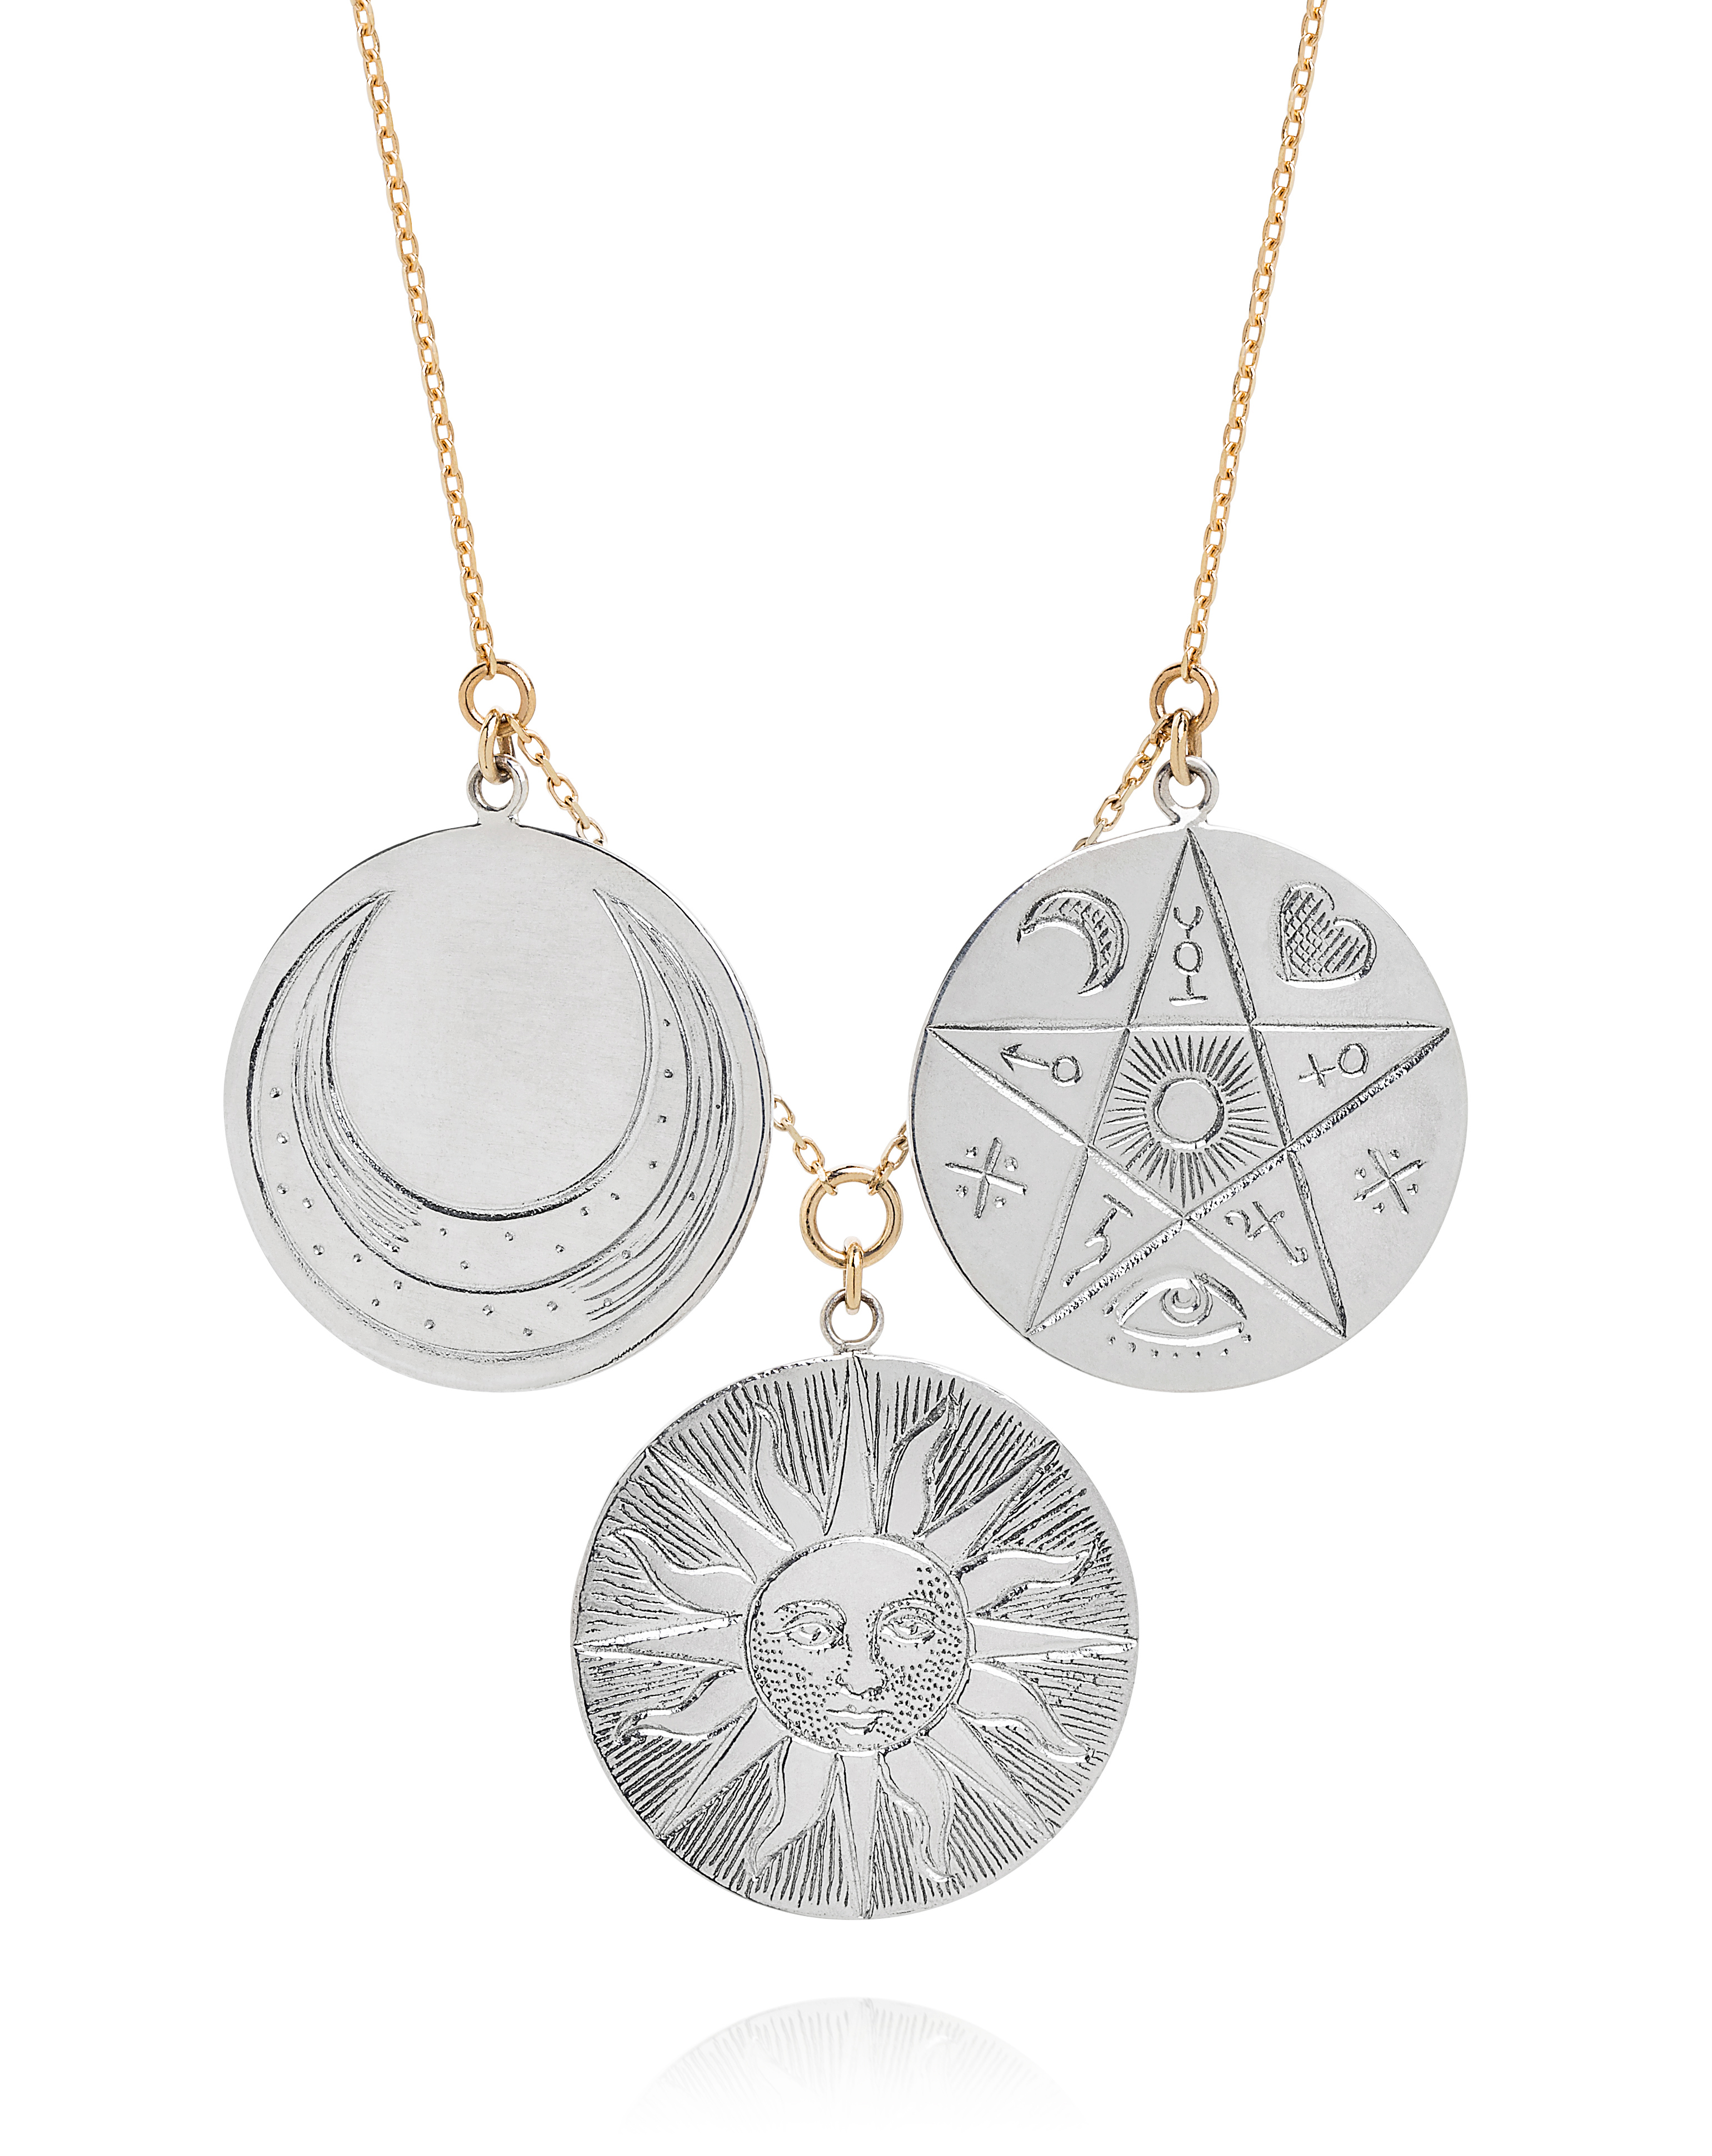 The Oracle Multi-Coin Necklace £485